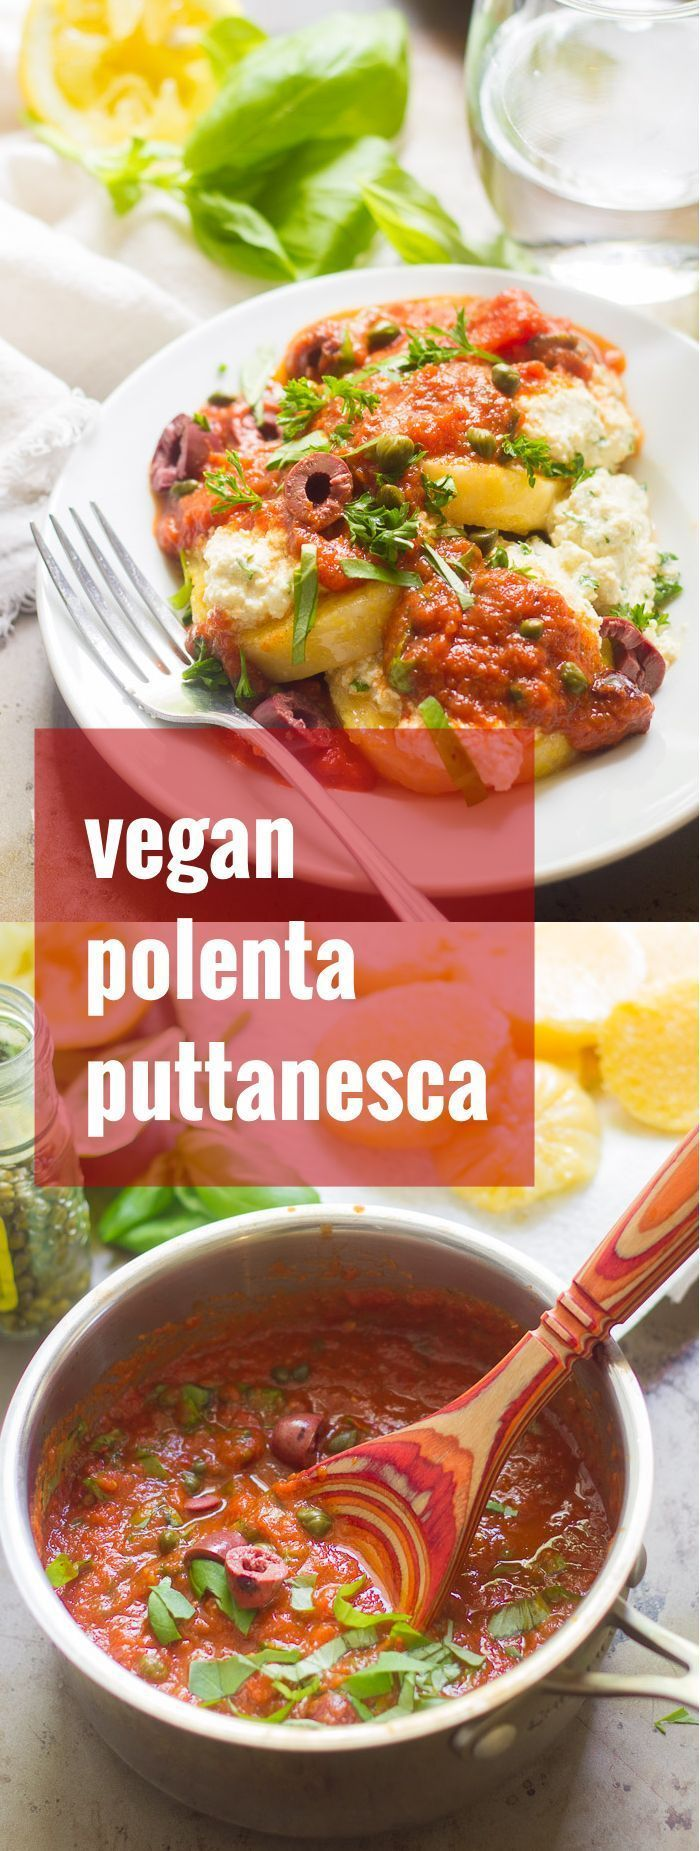 This spicy vegan polenta puttanesca is made with pan-fried slabs of polenta, layered with tofu ricotta and smothered in spicy tomato sauce.